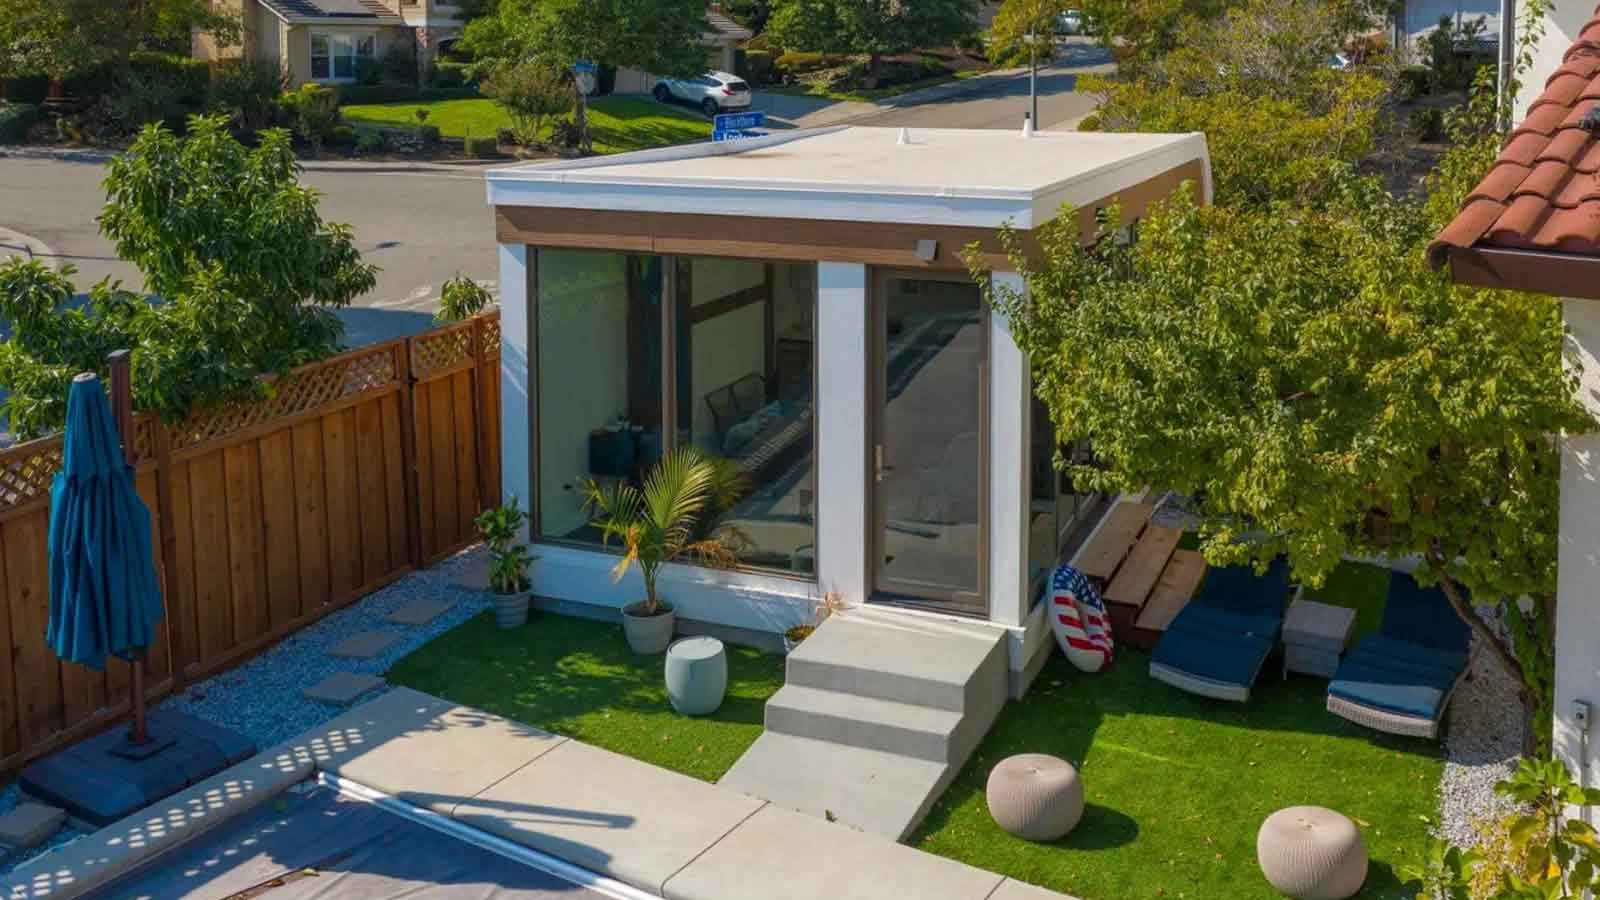 mighty buildings 3d-printed house